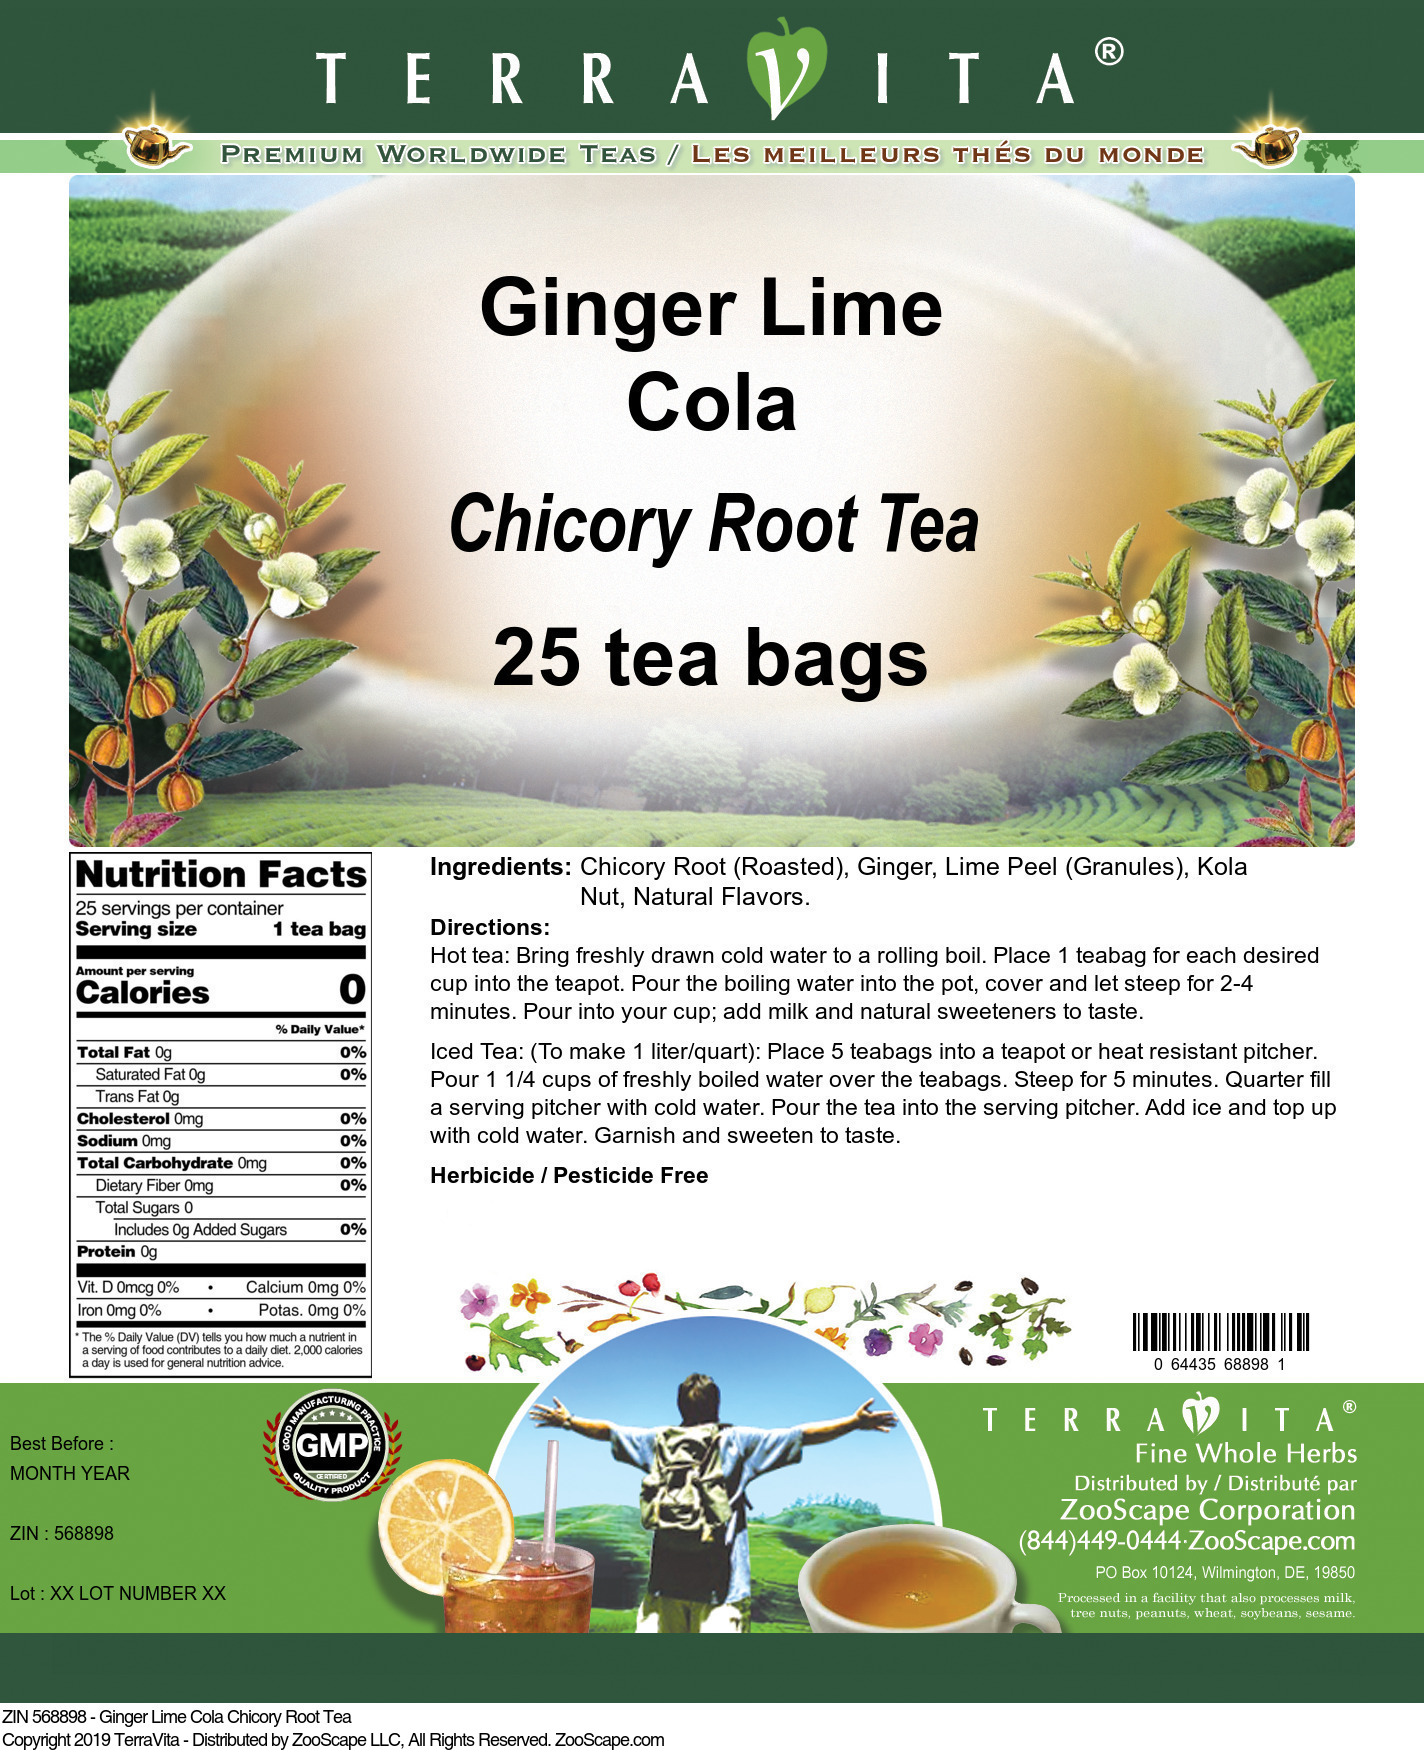 Ginger Lime Cola Chicory Root Tea